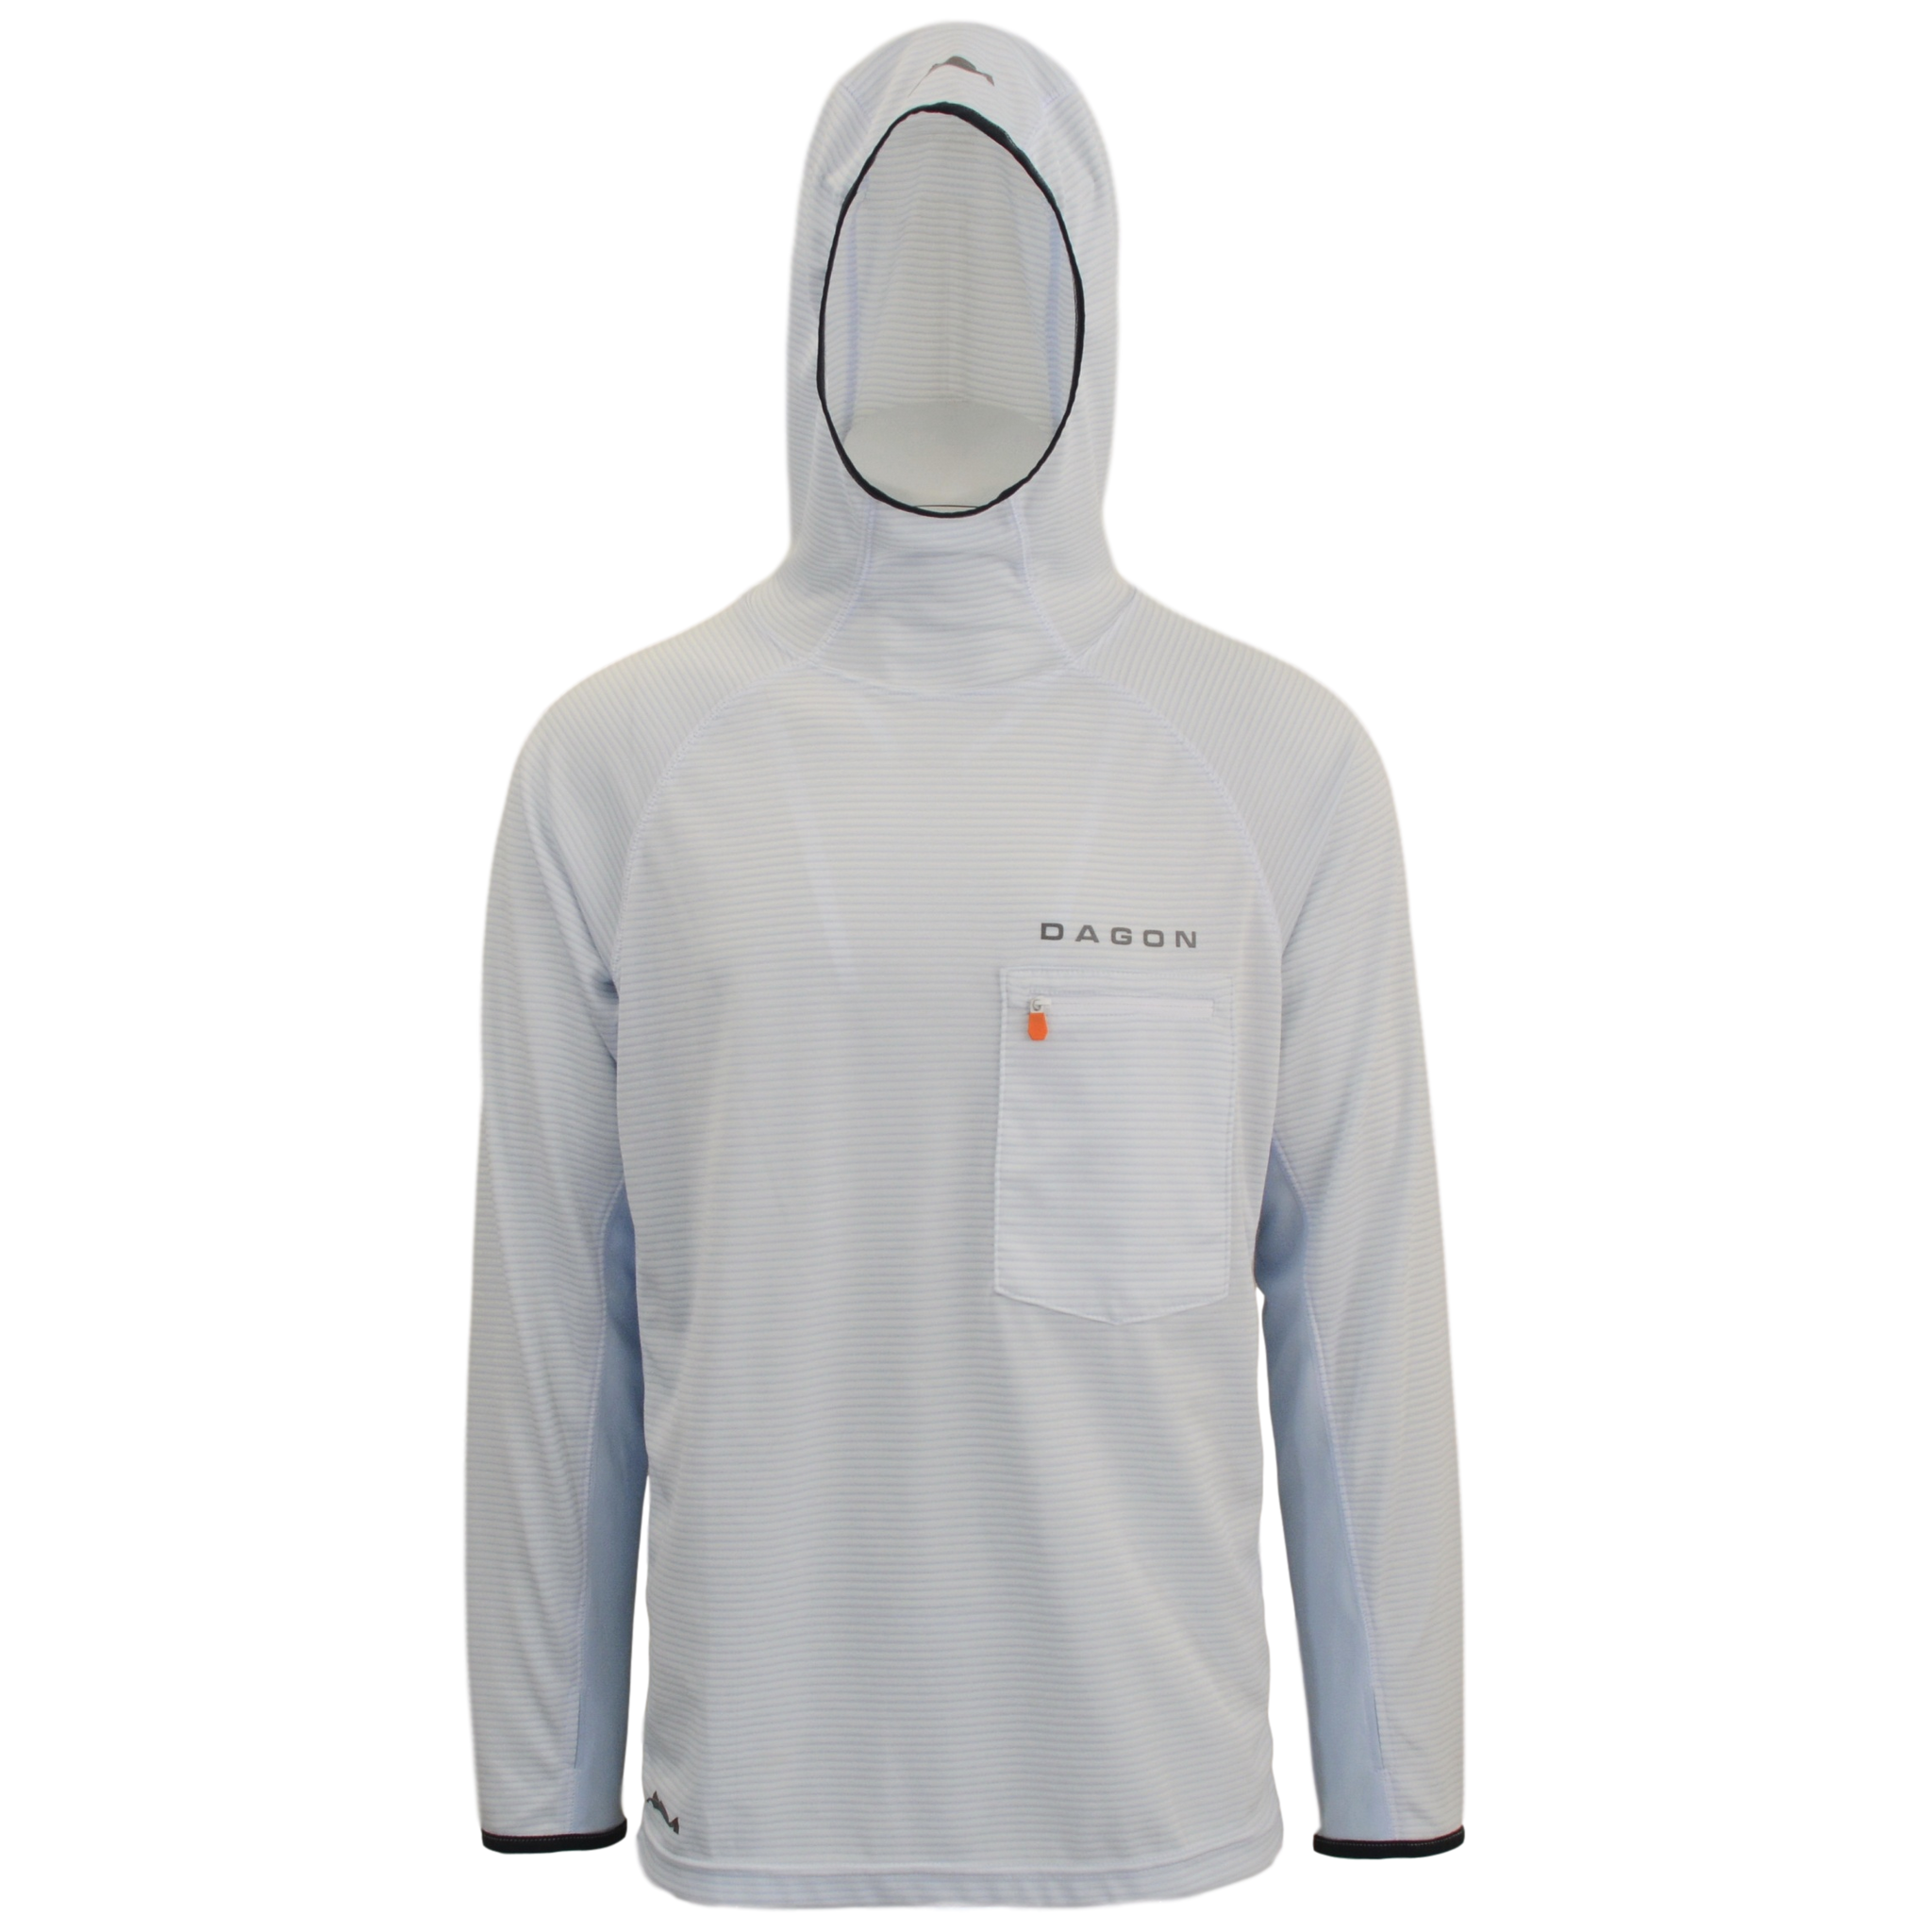 Products Dagon Apparel Company Quality Fishing Clothing Rise Up